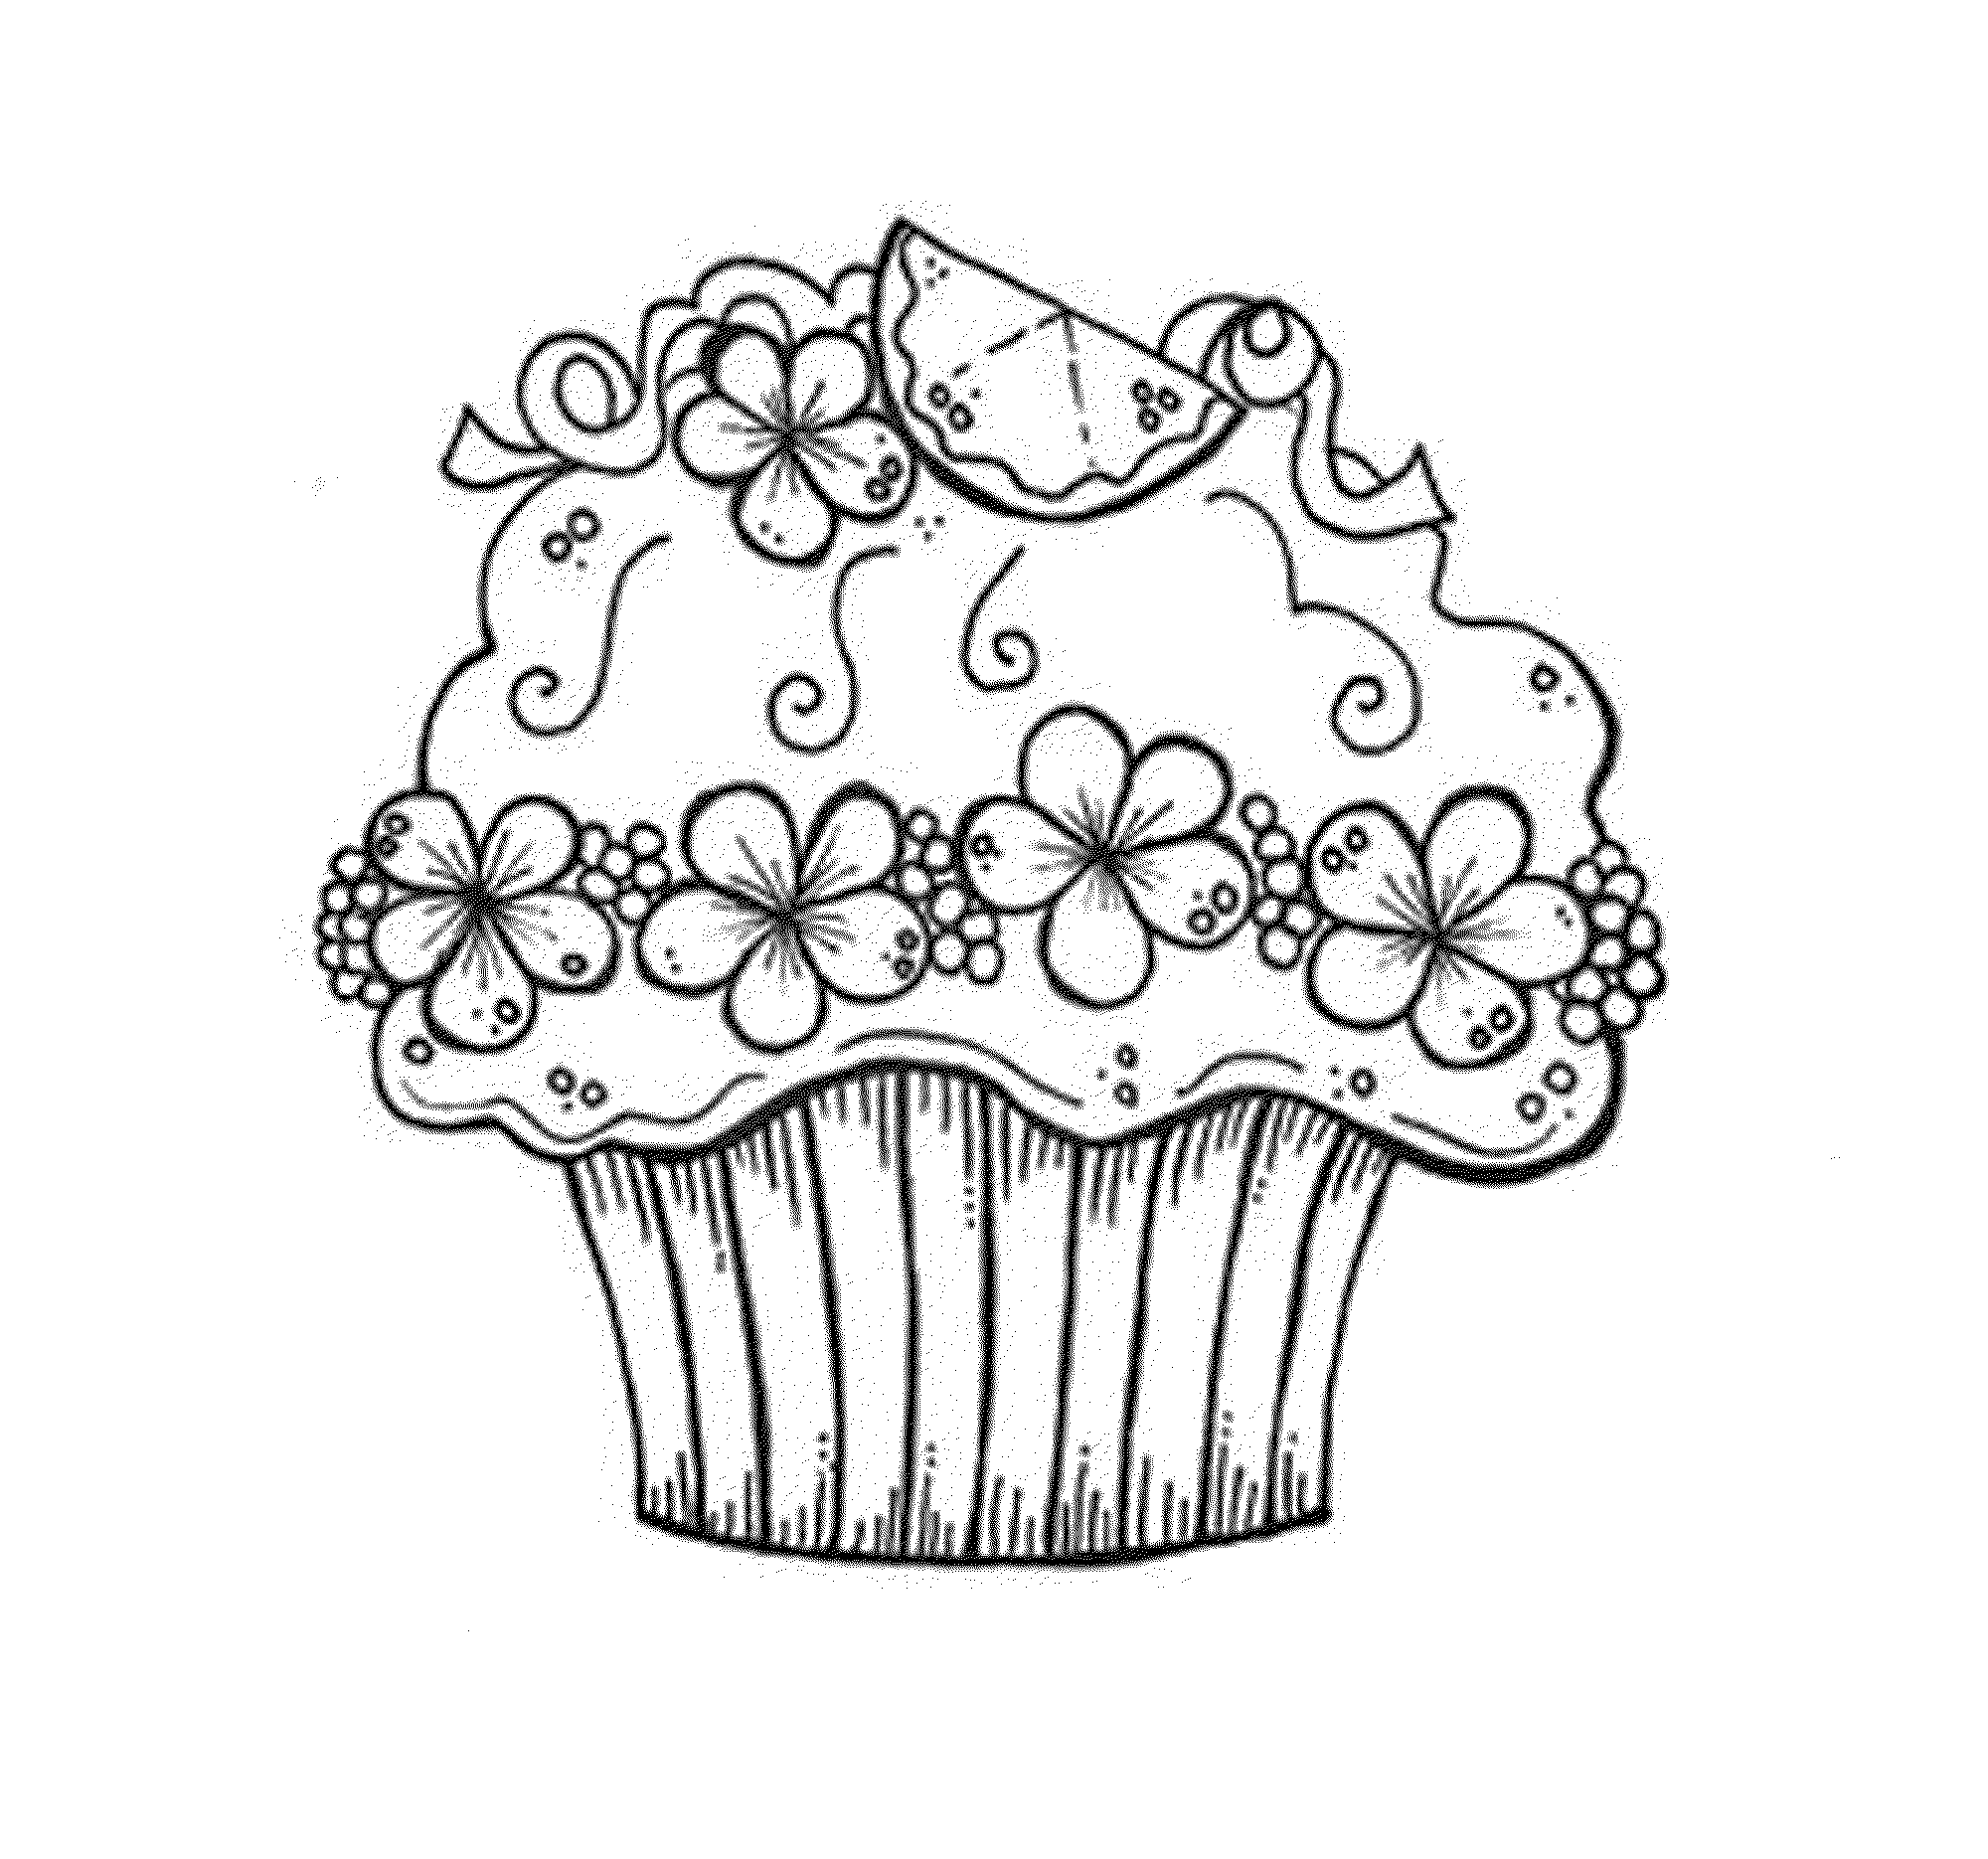 Cupcakes Coloring Pages Printable Kids Colouring Pages Cupcake Coloring Pages Birthday Coloring Pages Coloring Pages